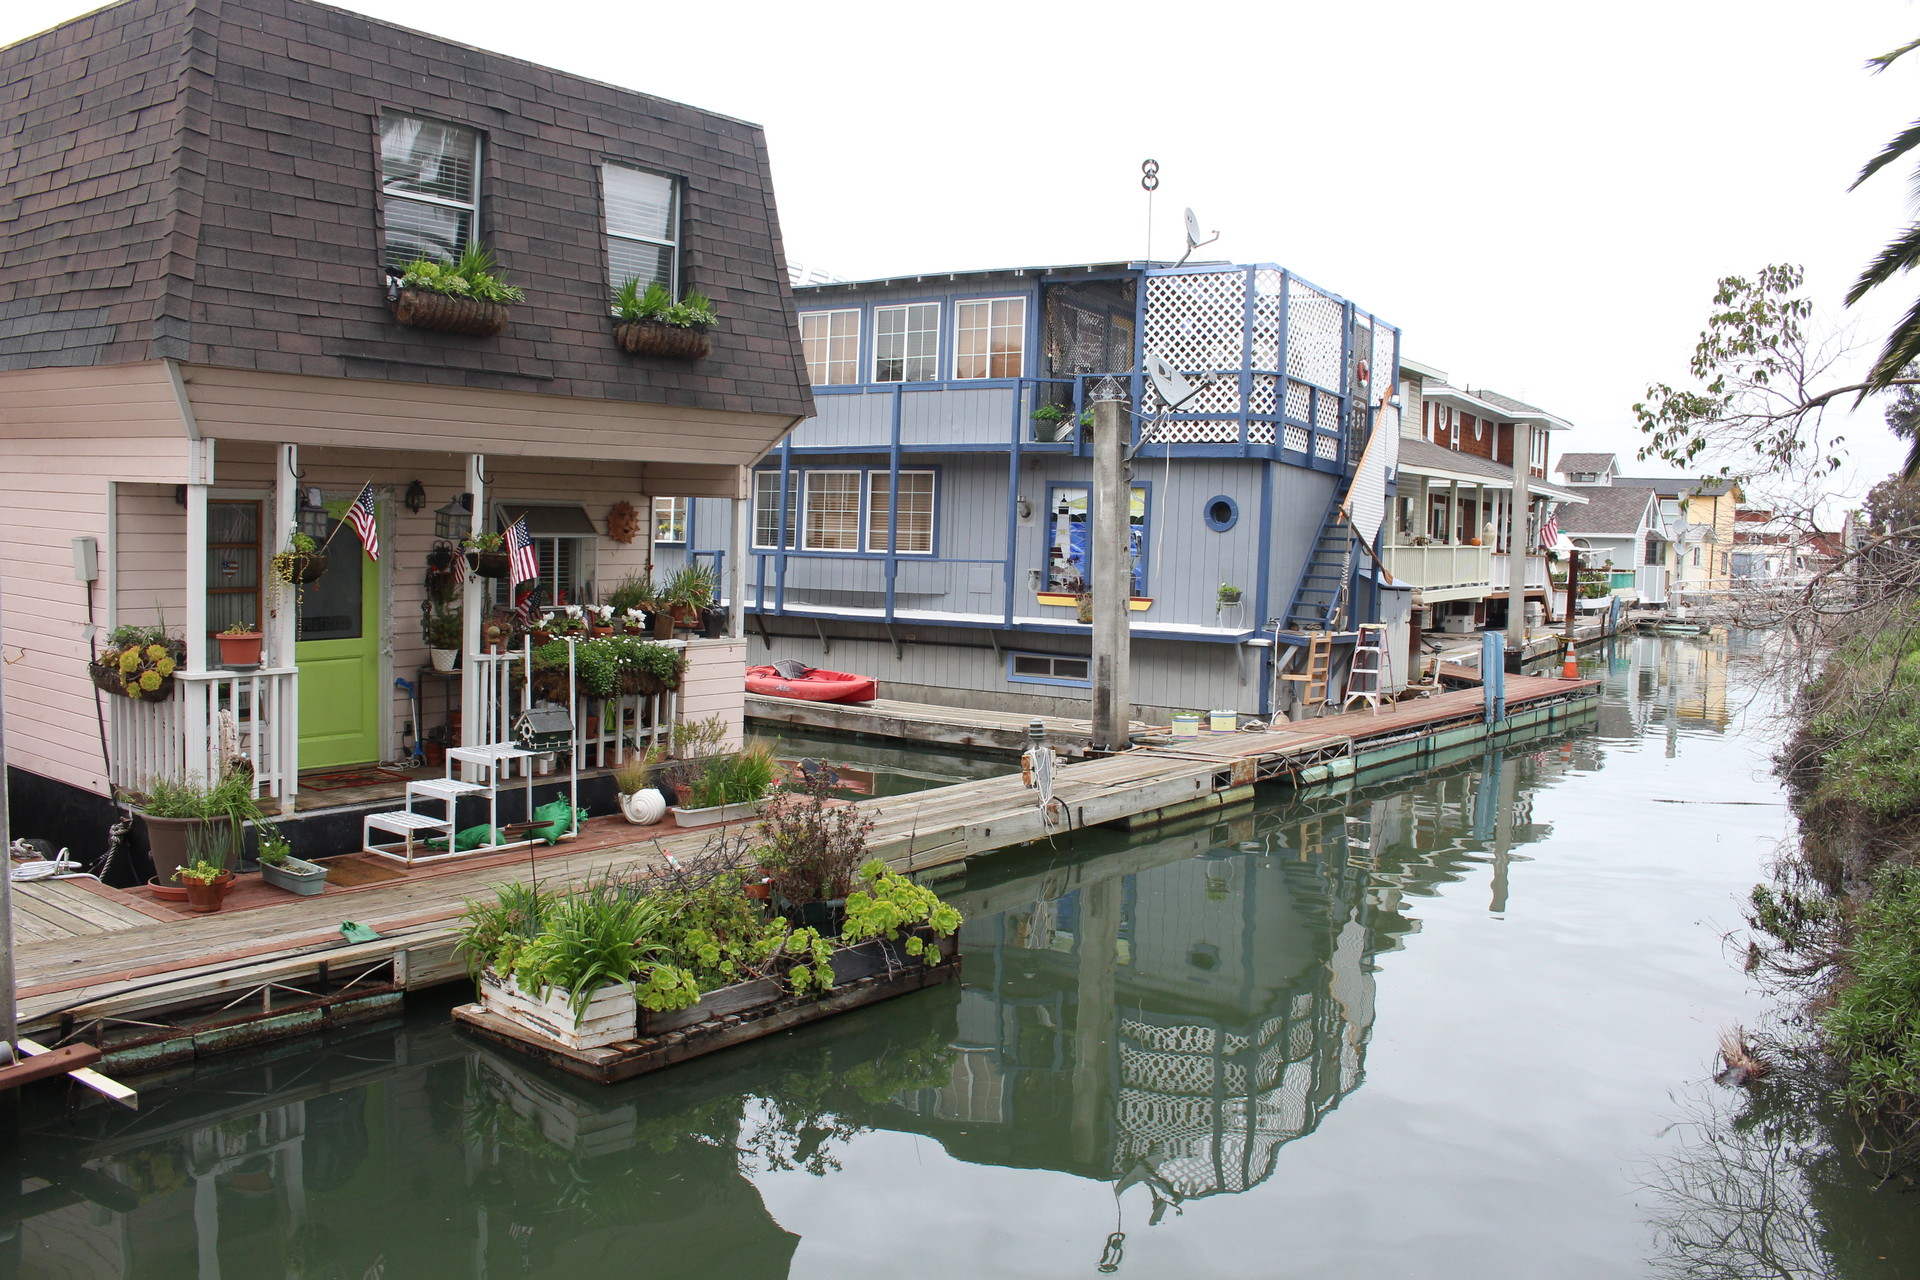 About 70 liveaboards are moored at Redwood City's Docktown Marina --  floating buildings or boats adapted for residential uses.